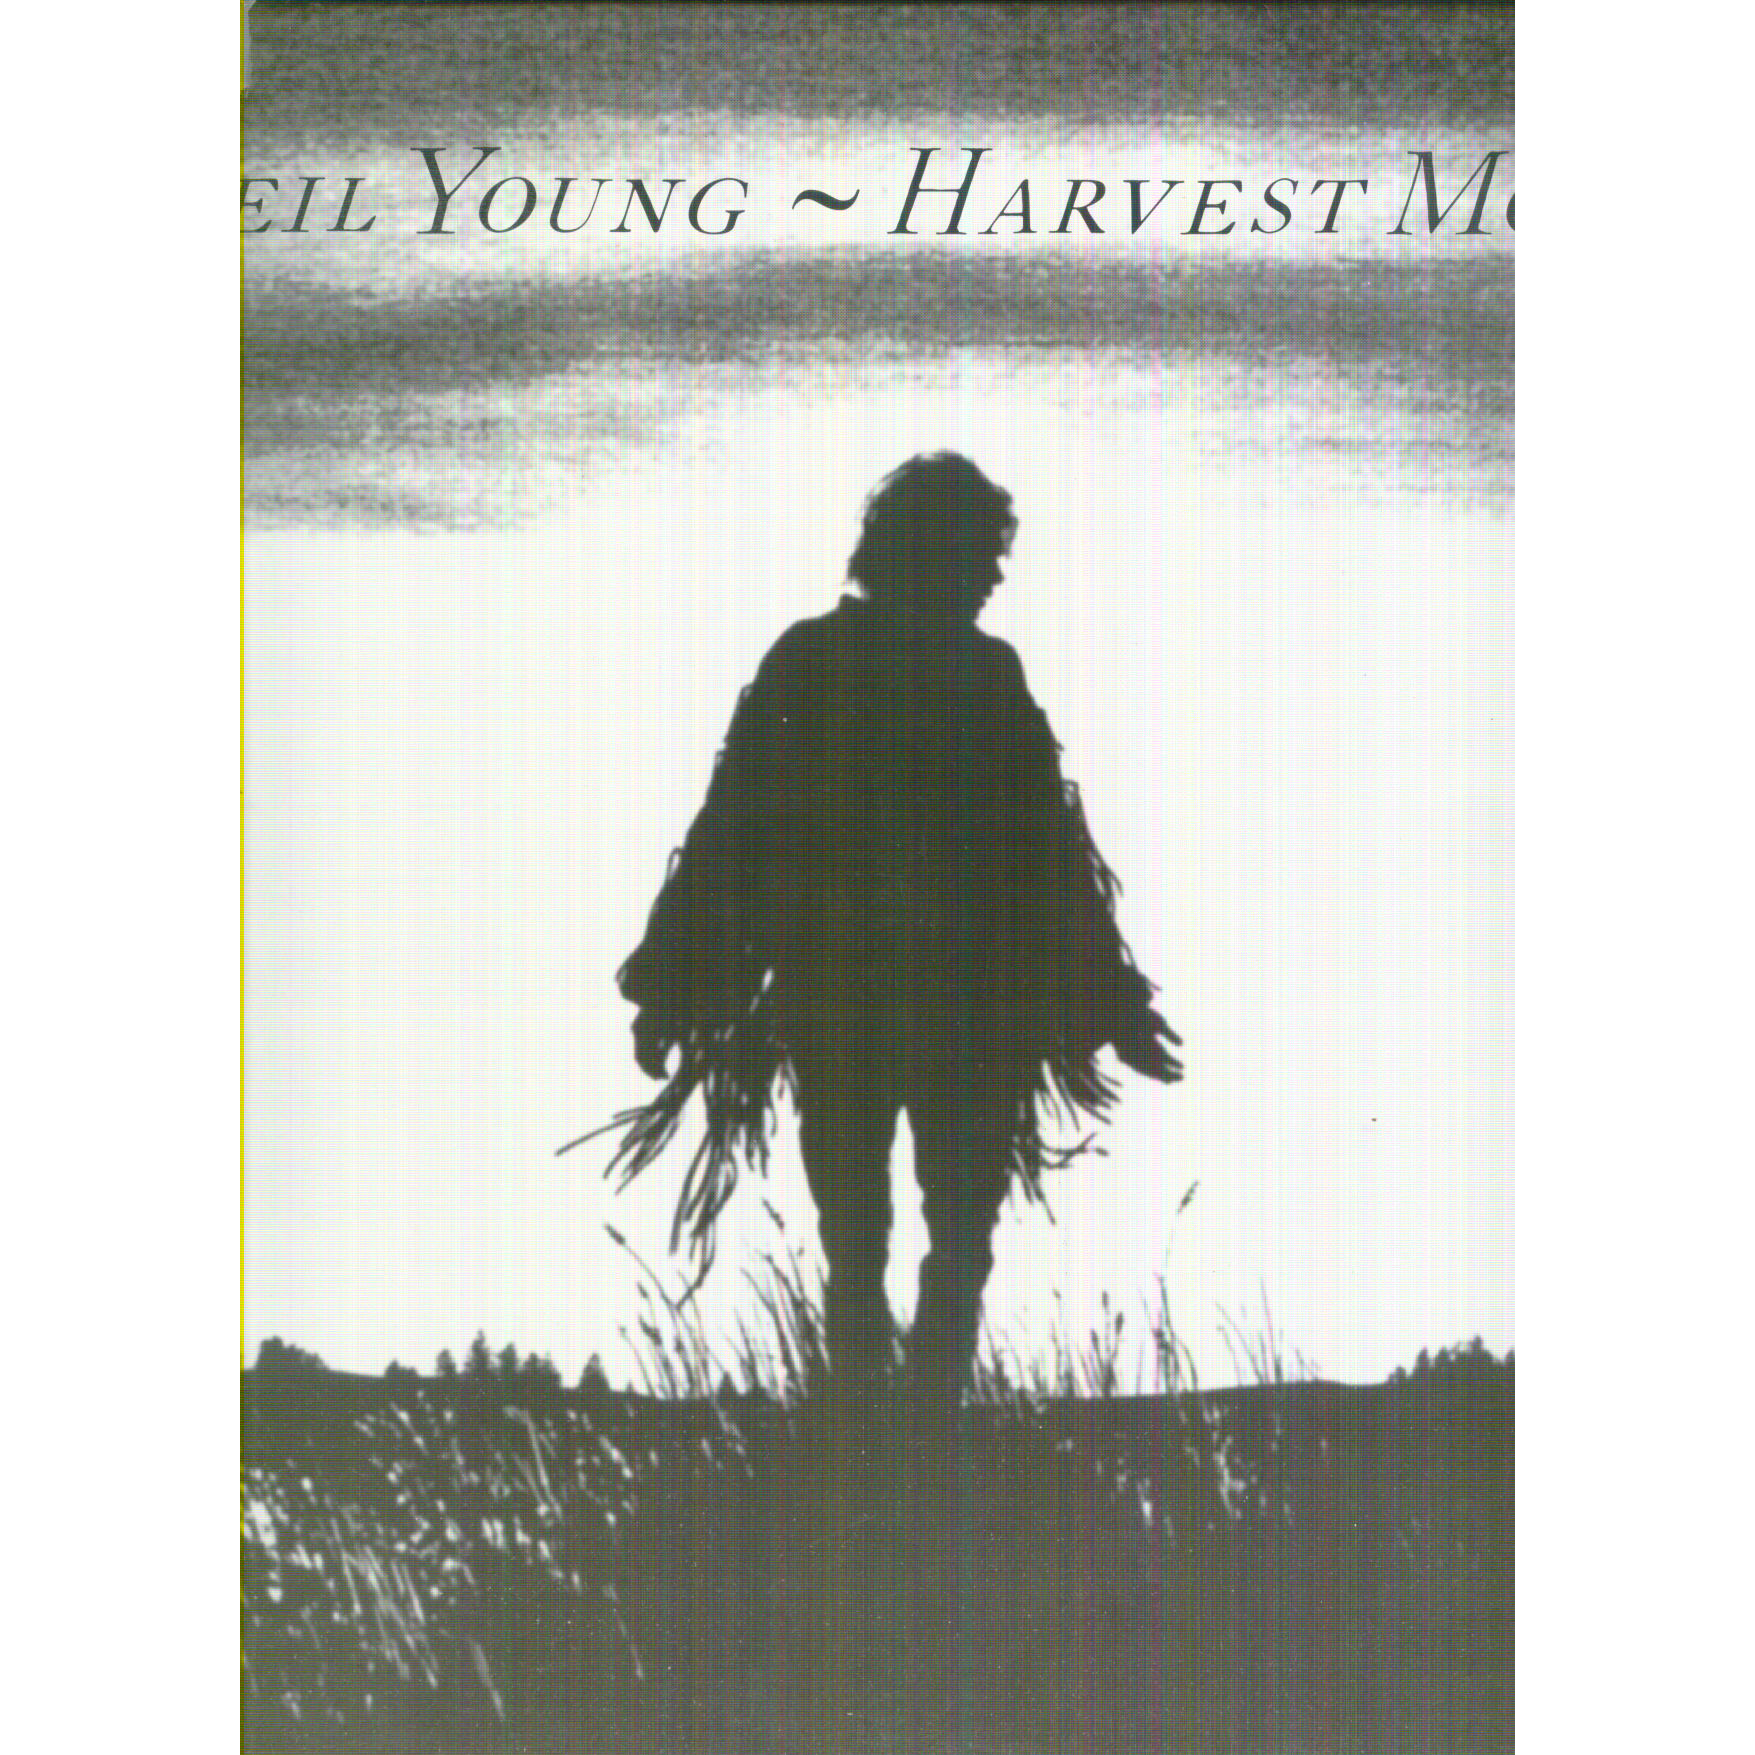 Neil Young / Jack Nitzsche - Harvest Moon Album